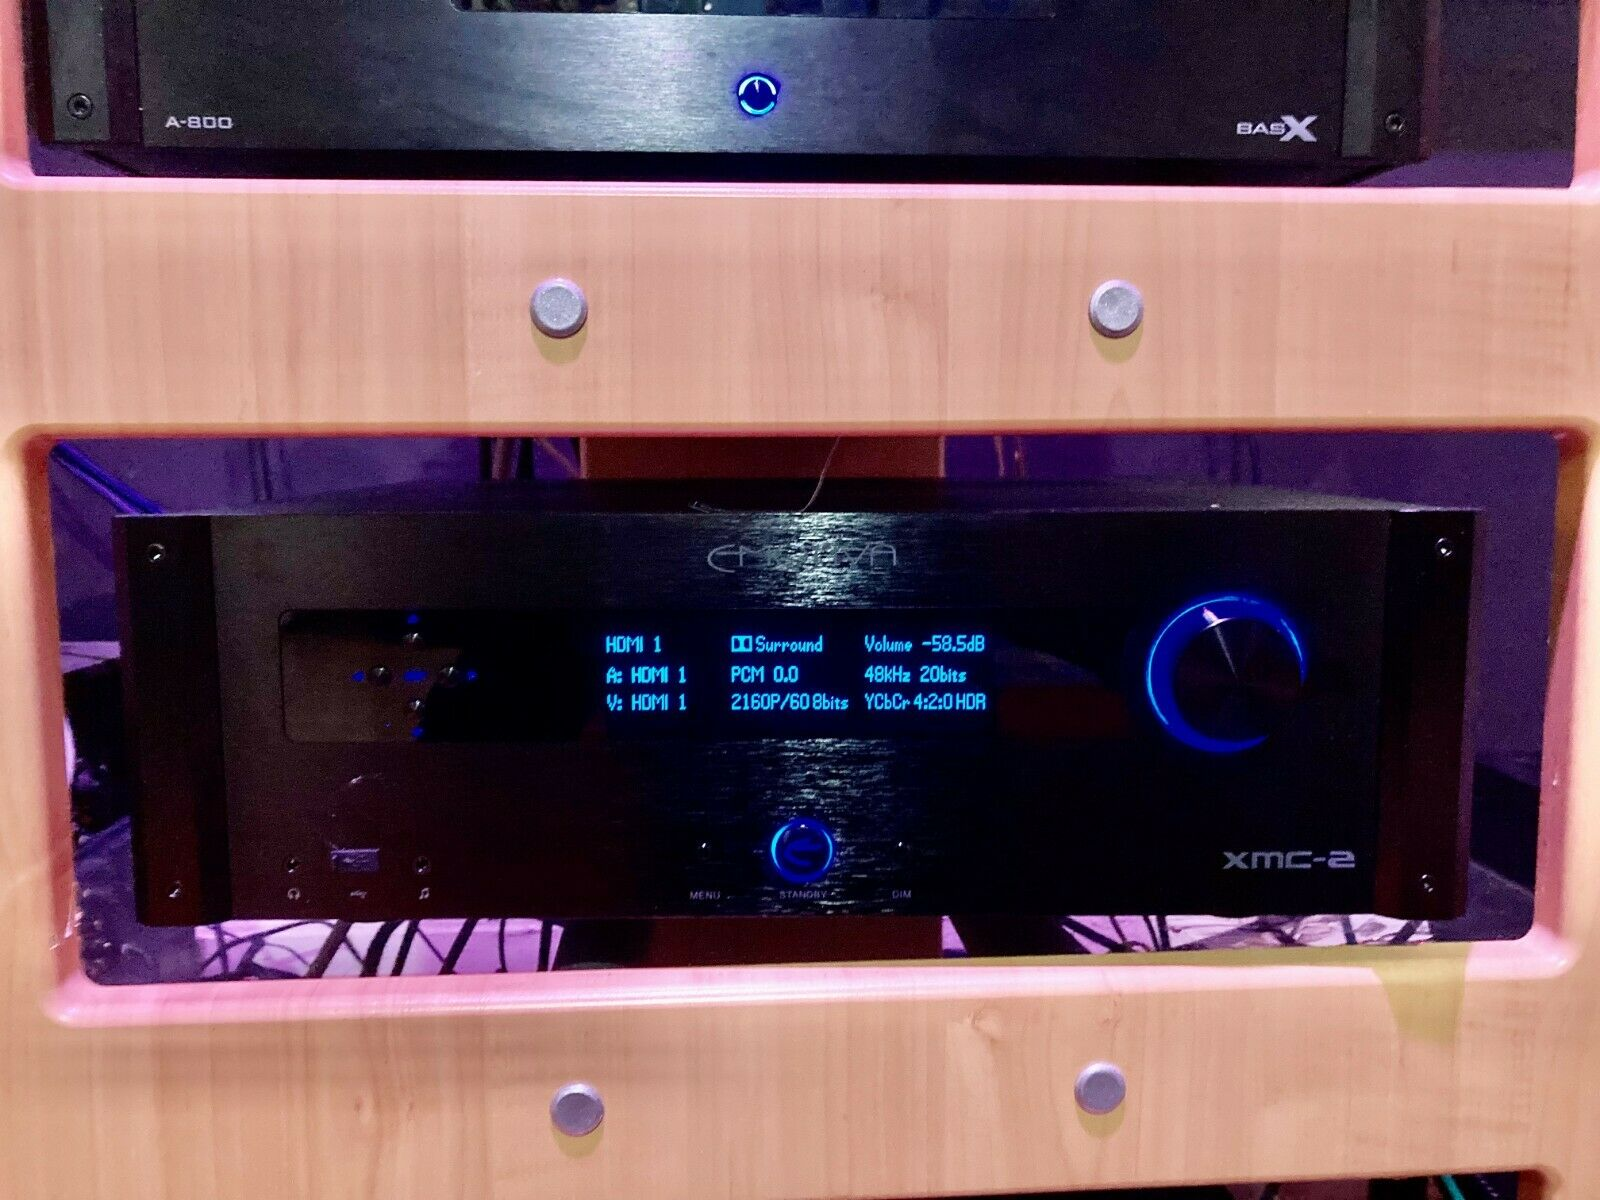 Emotiva XMC-2 16-Channel Home Theater Processor with DIRAC Live. Available Now for 2300.00